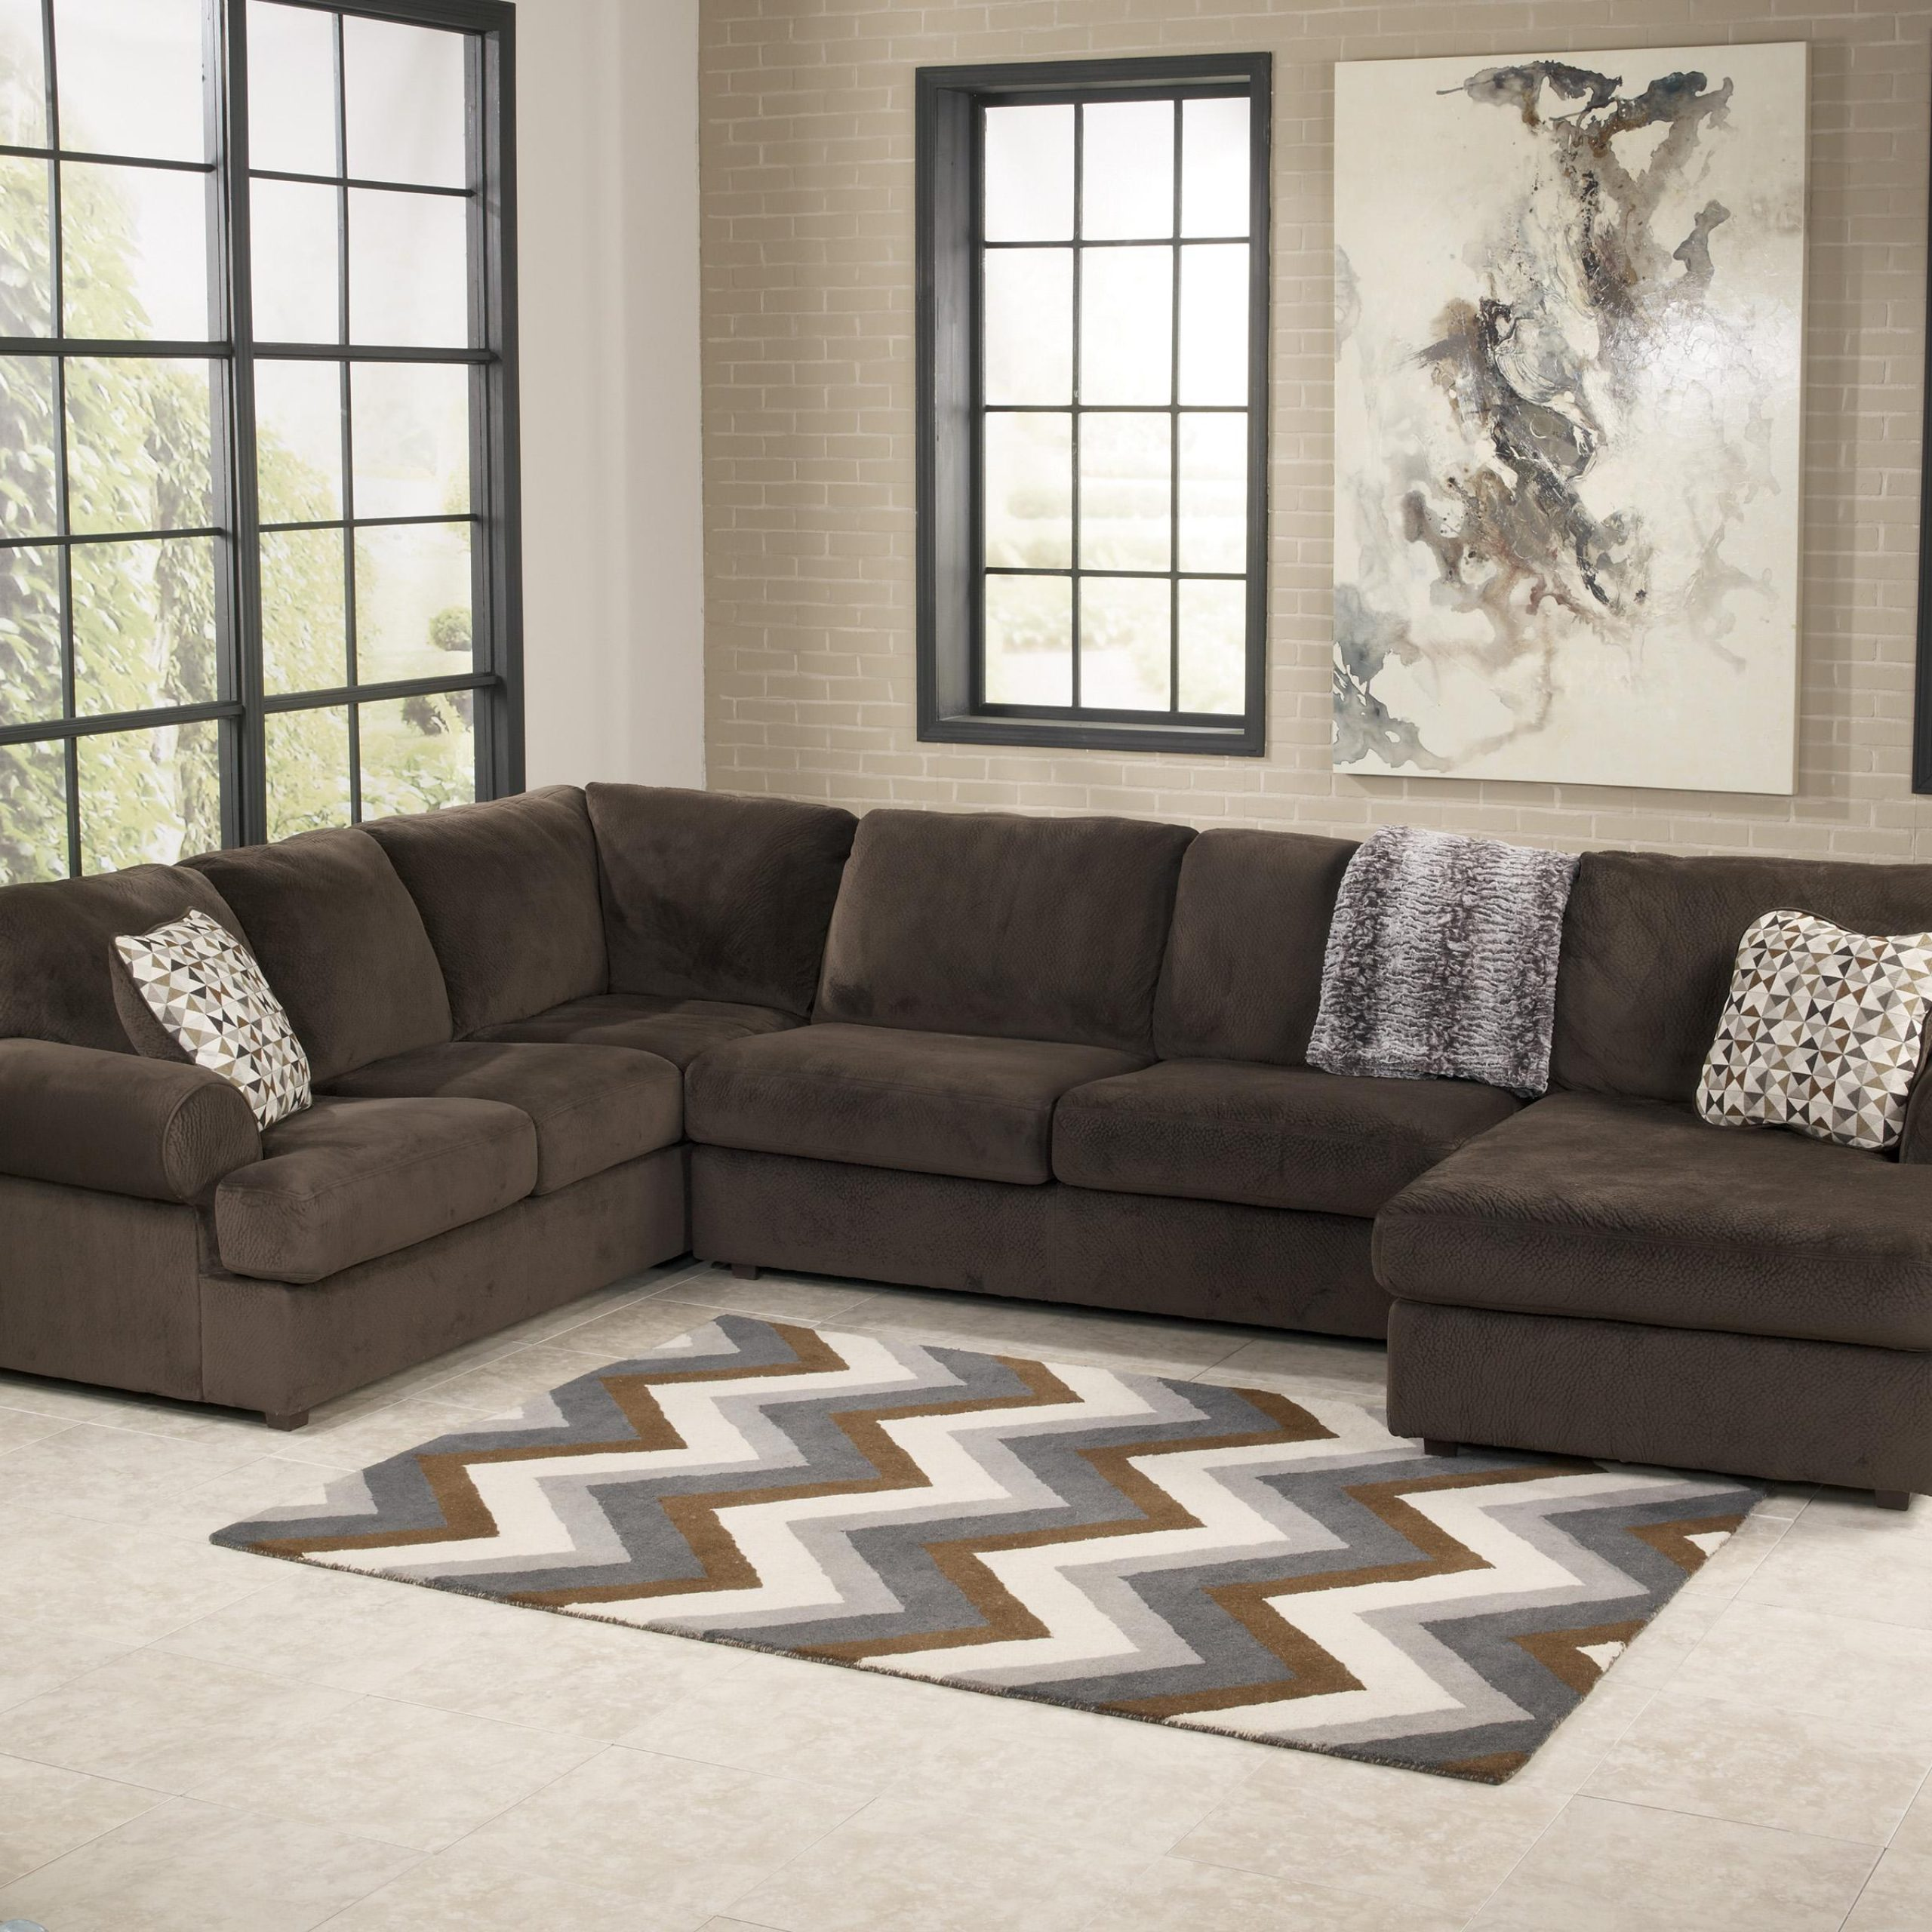 Casual Sectional Sofa With Right Chaisesignature Pertaining To Hannah Right Sectional Sofas (View 8 of 15)